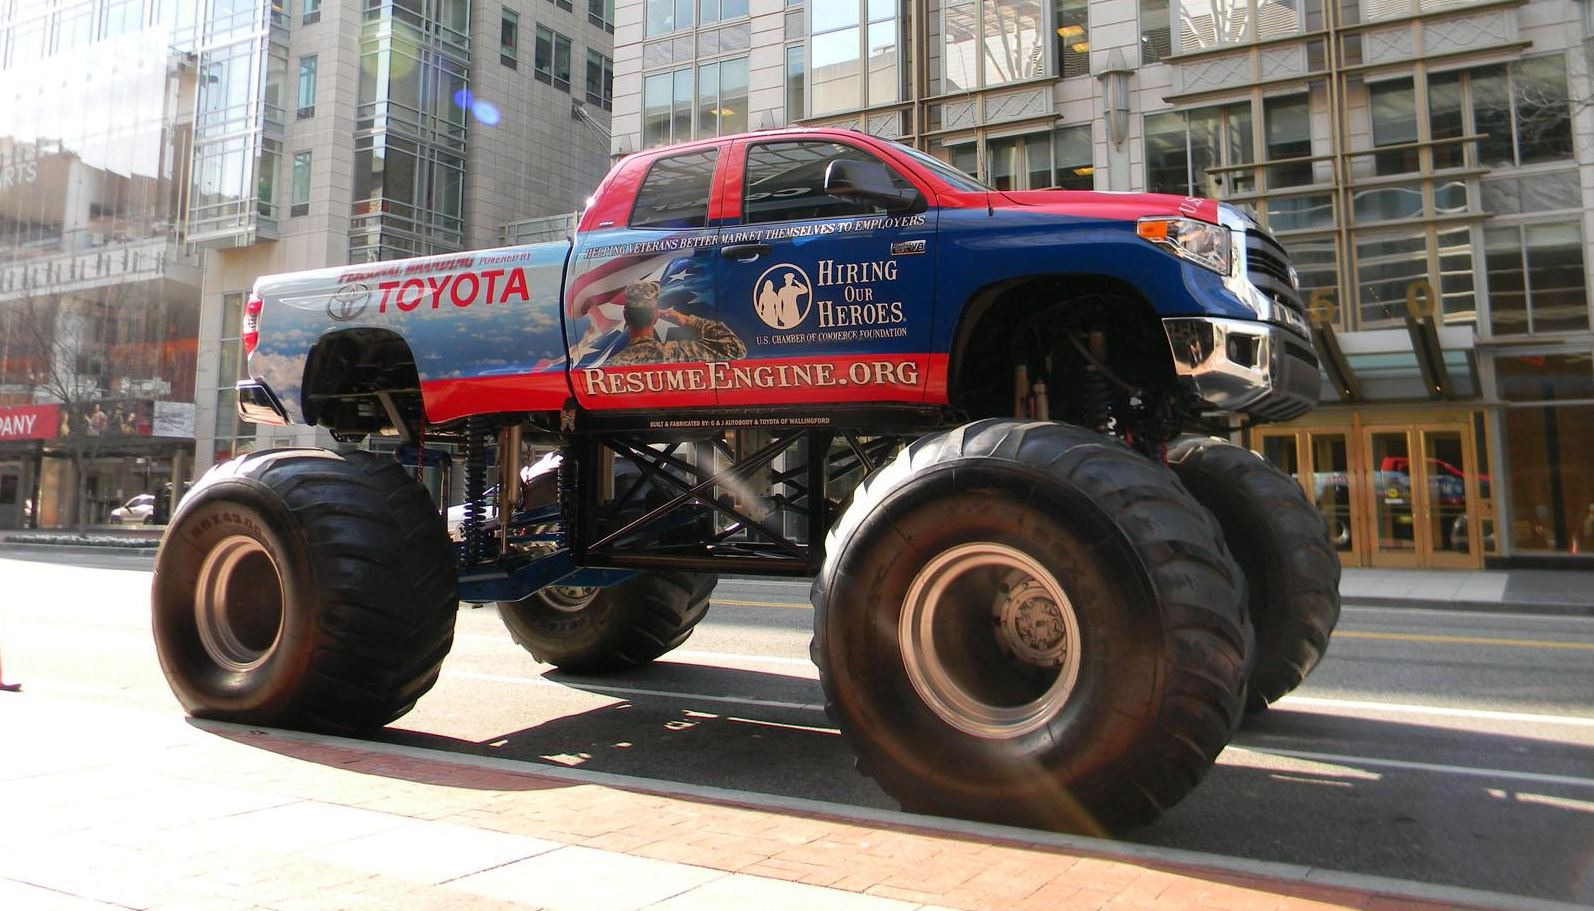 Toyota Tundra Monster Trucks